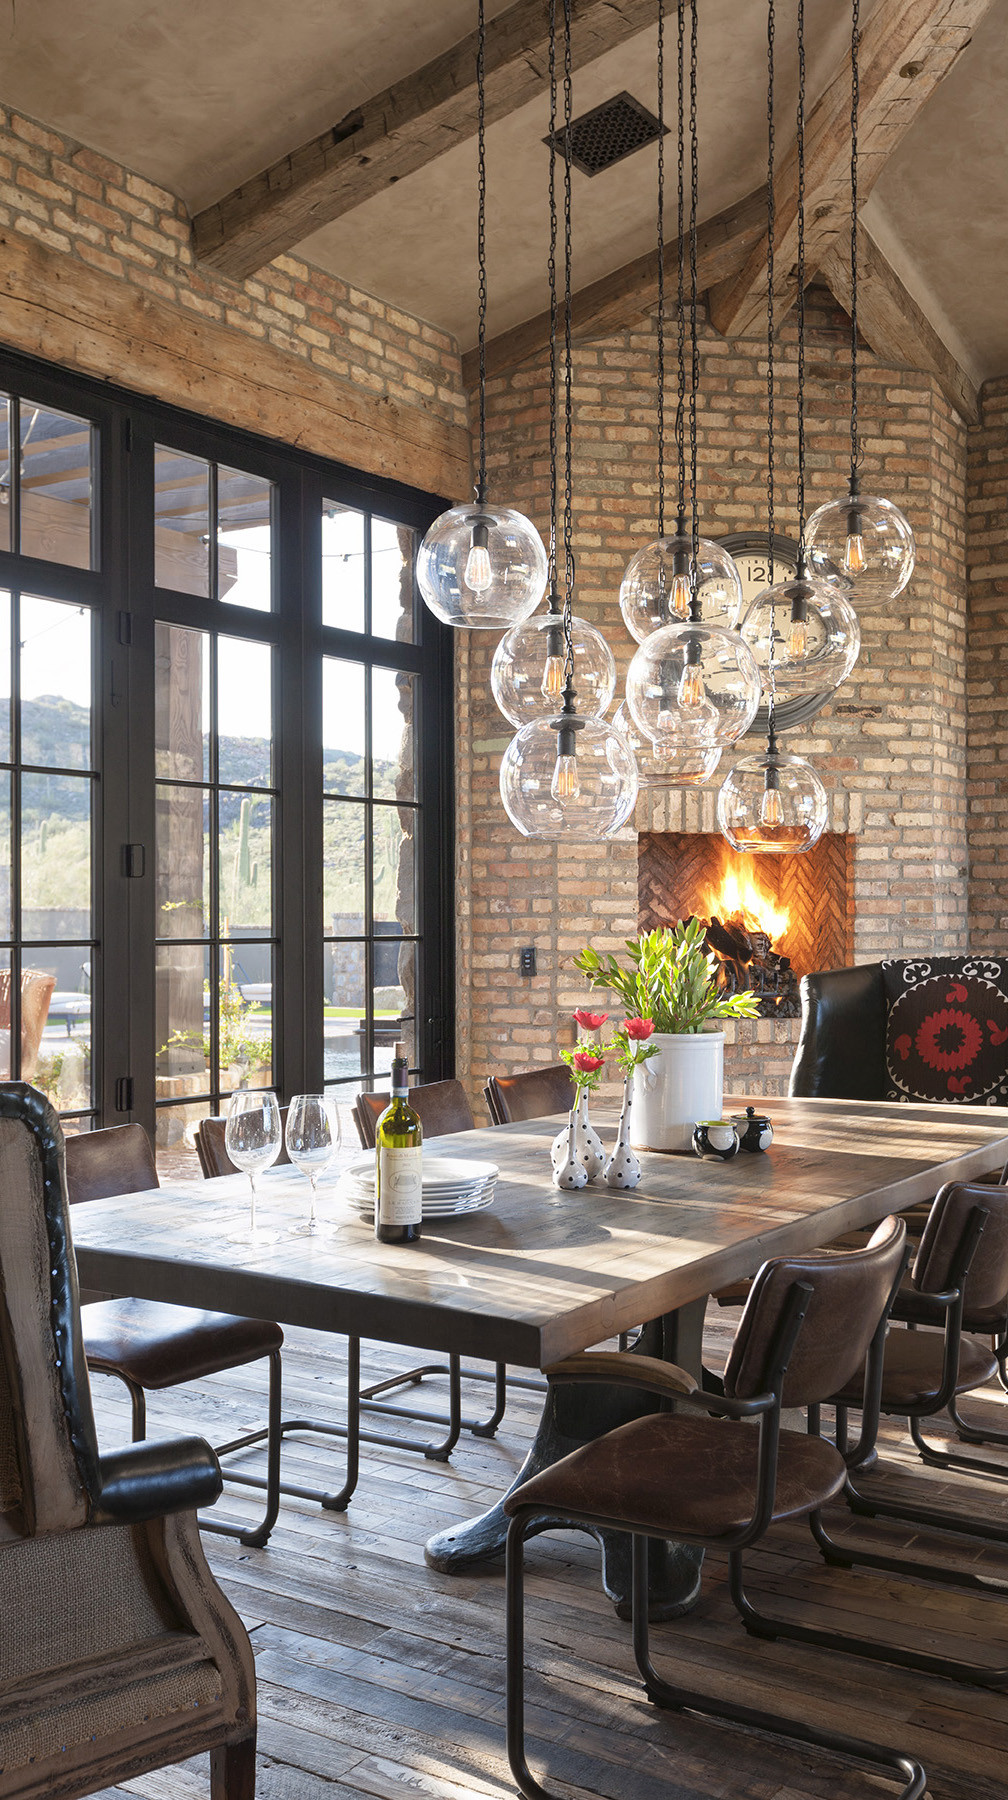 Captivating Rustic Dining Room Designs Rustic Design Archives Buyerselect